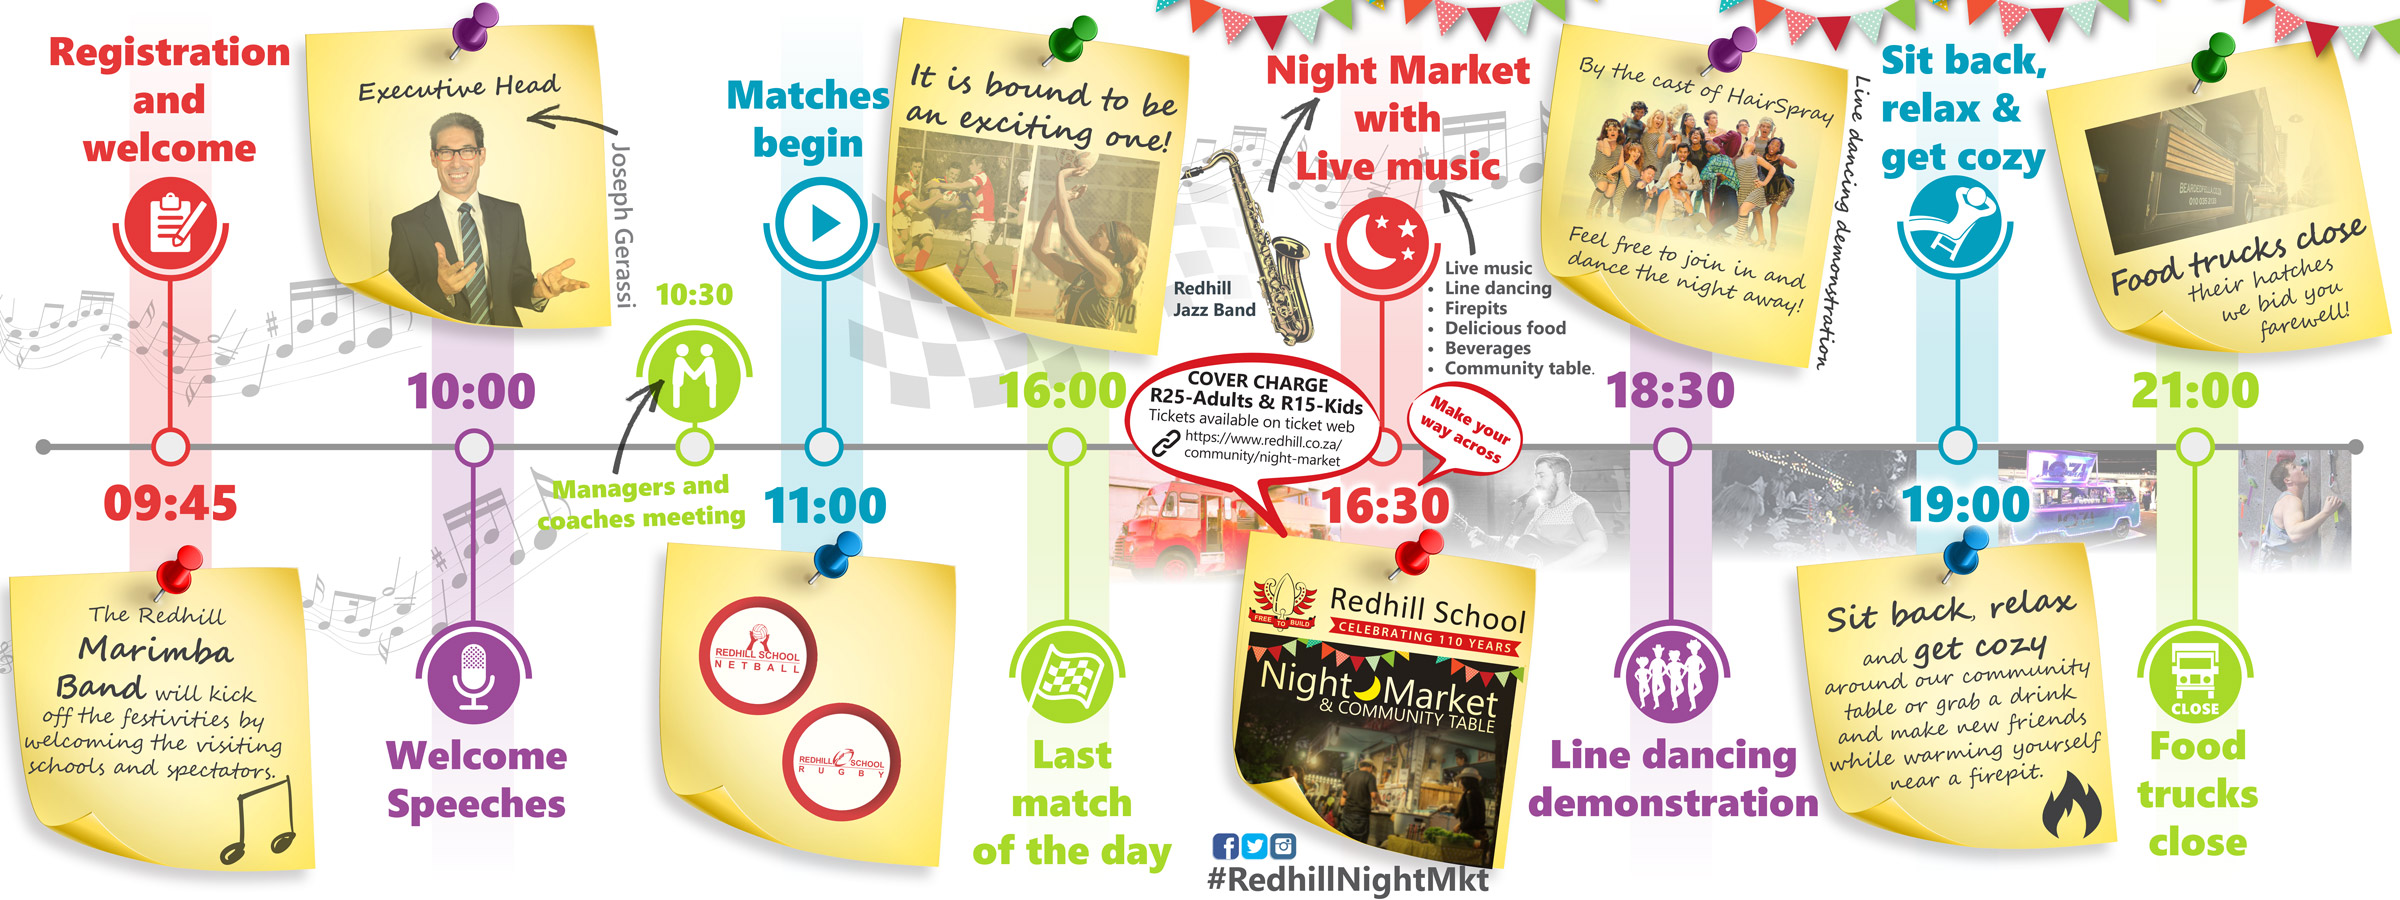 youth-fest-and-night-market--timeline.jpg